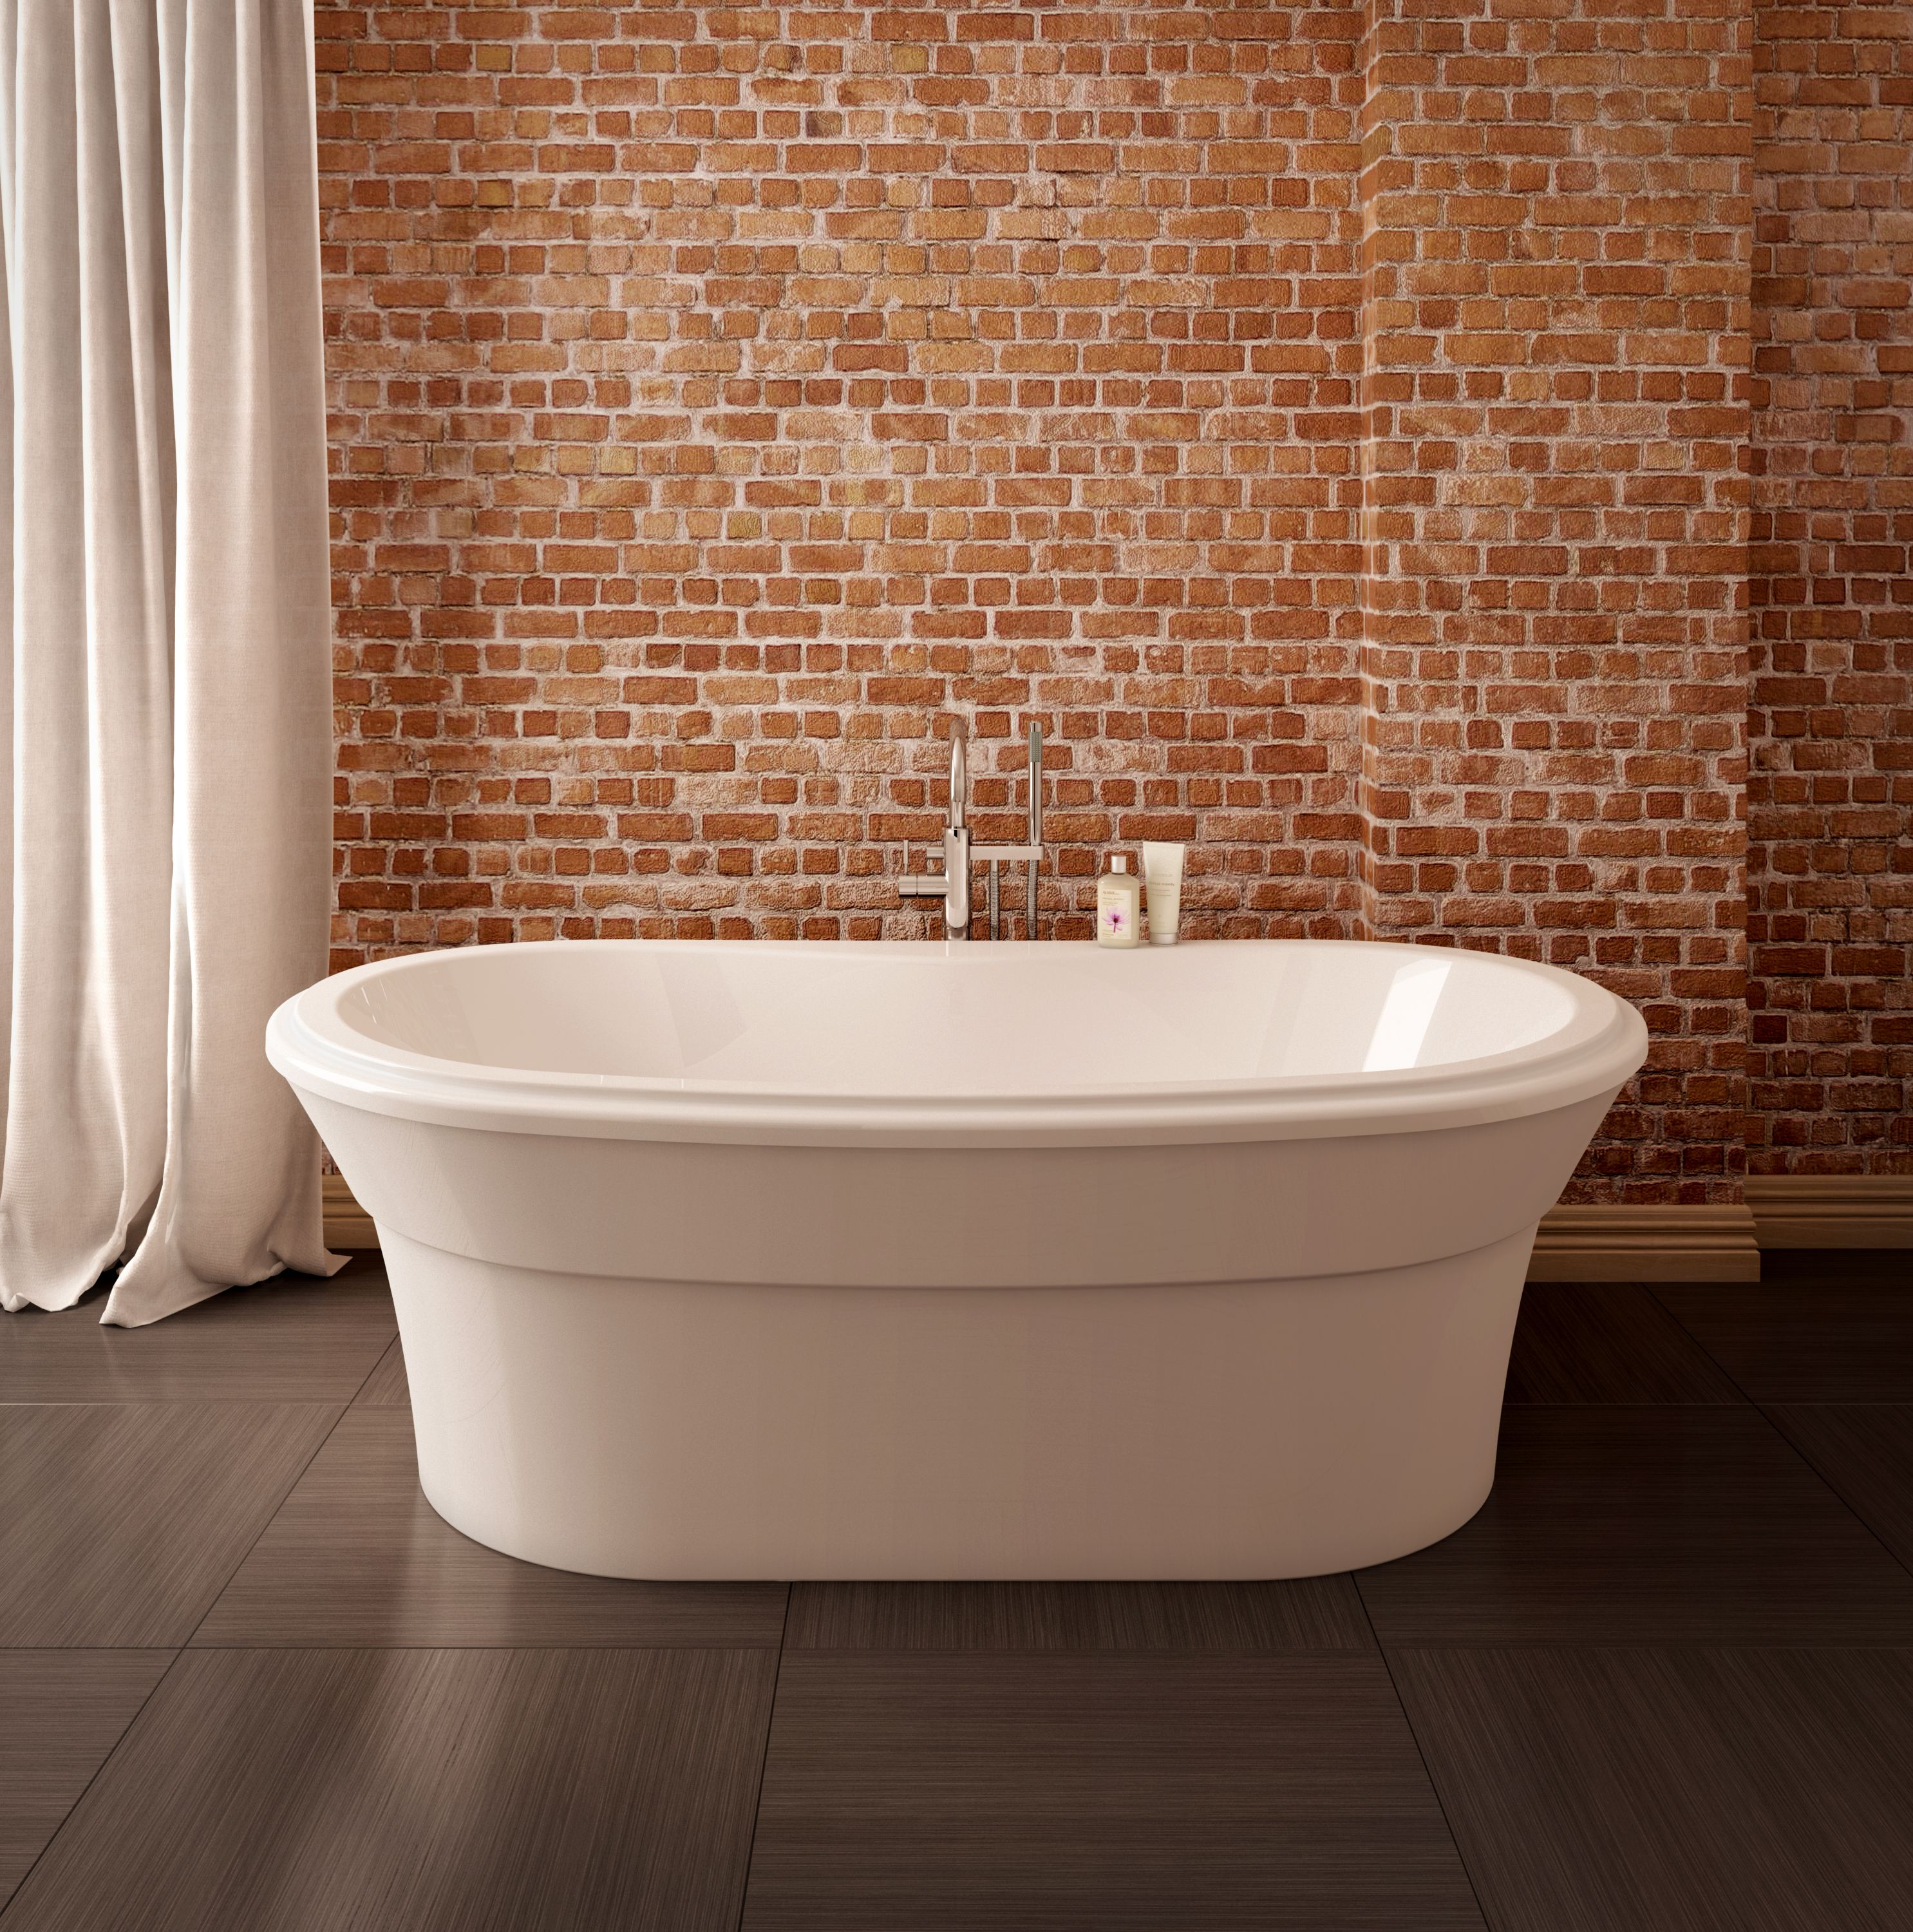 hand freestanding taps filler waterfall bathtub tap spa spout amp bath shower column stone zoom with lusso